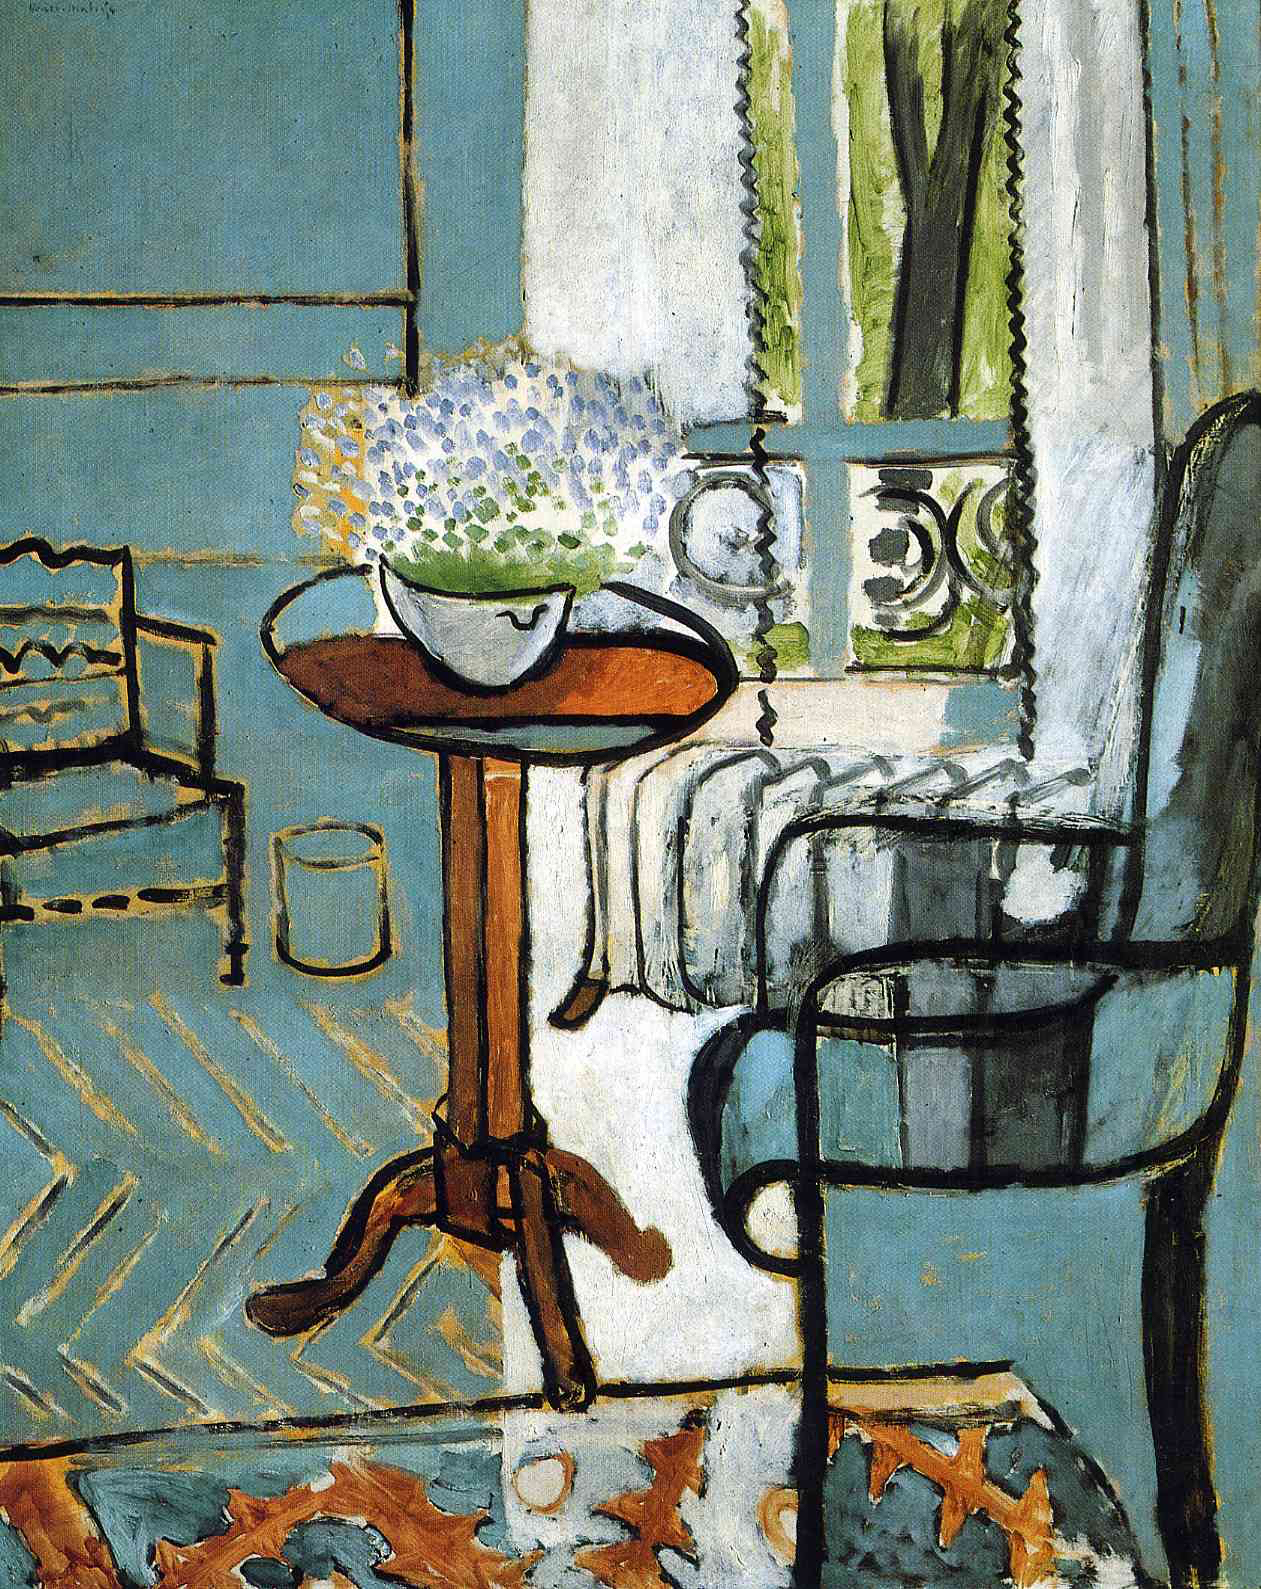 Epph matisse s the window 1916 for Par la fenetre ouverte